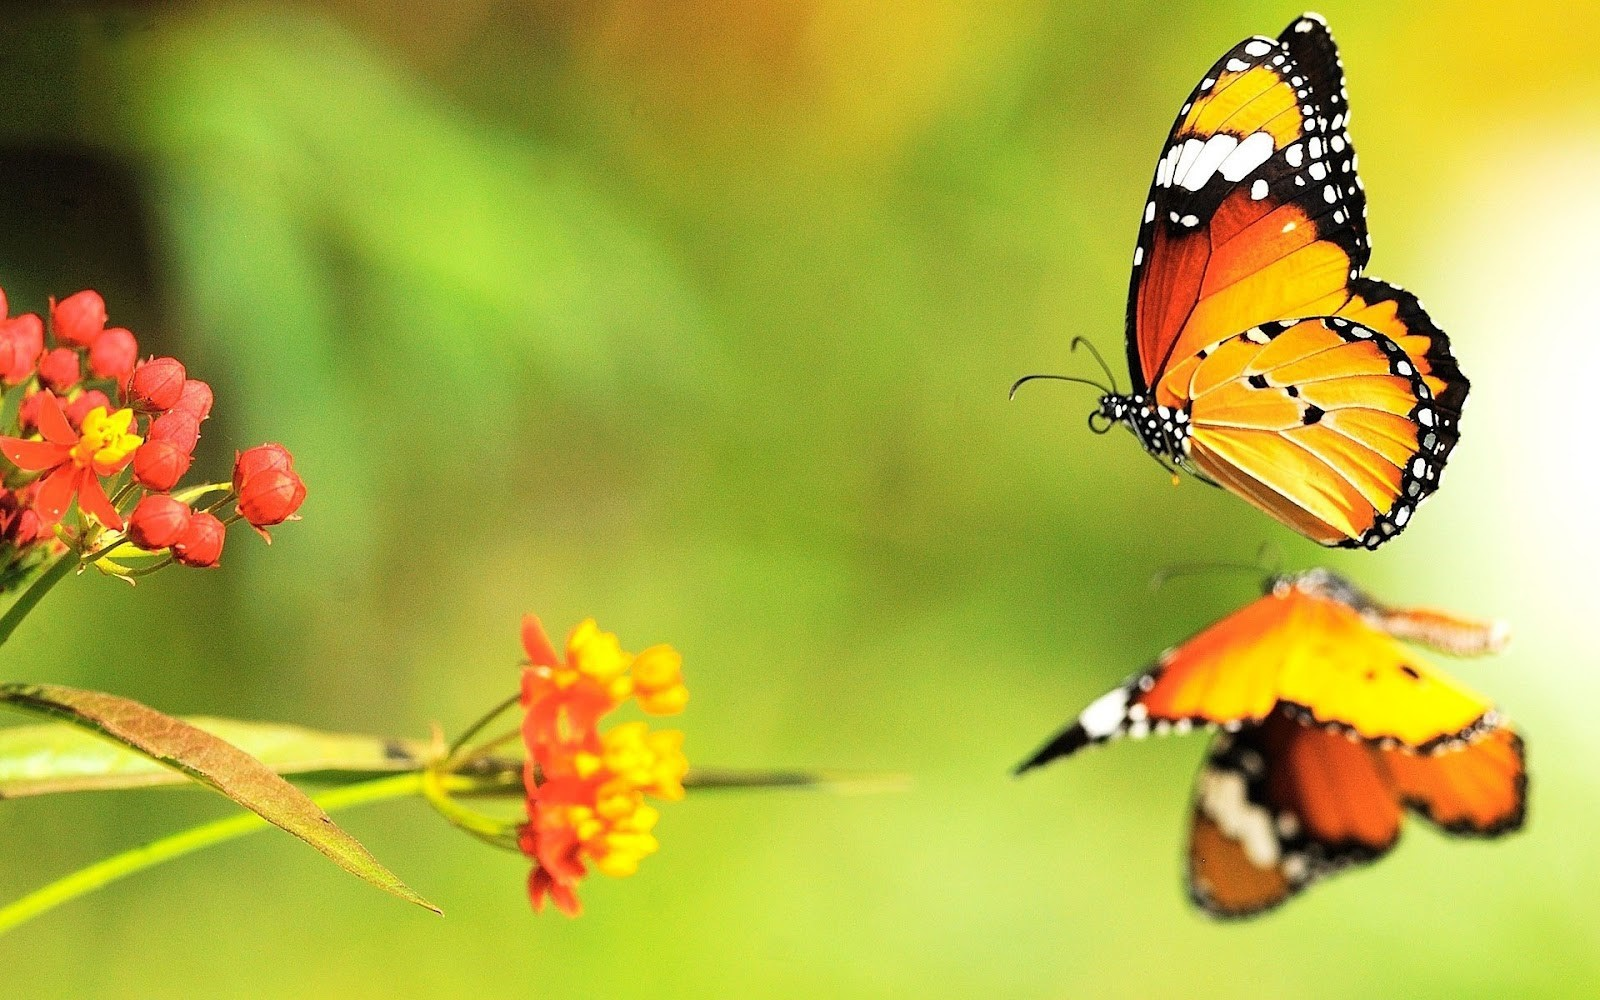 Butterfly Wallpapers Backgrounds Images Freecreatives 1600x1000